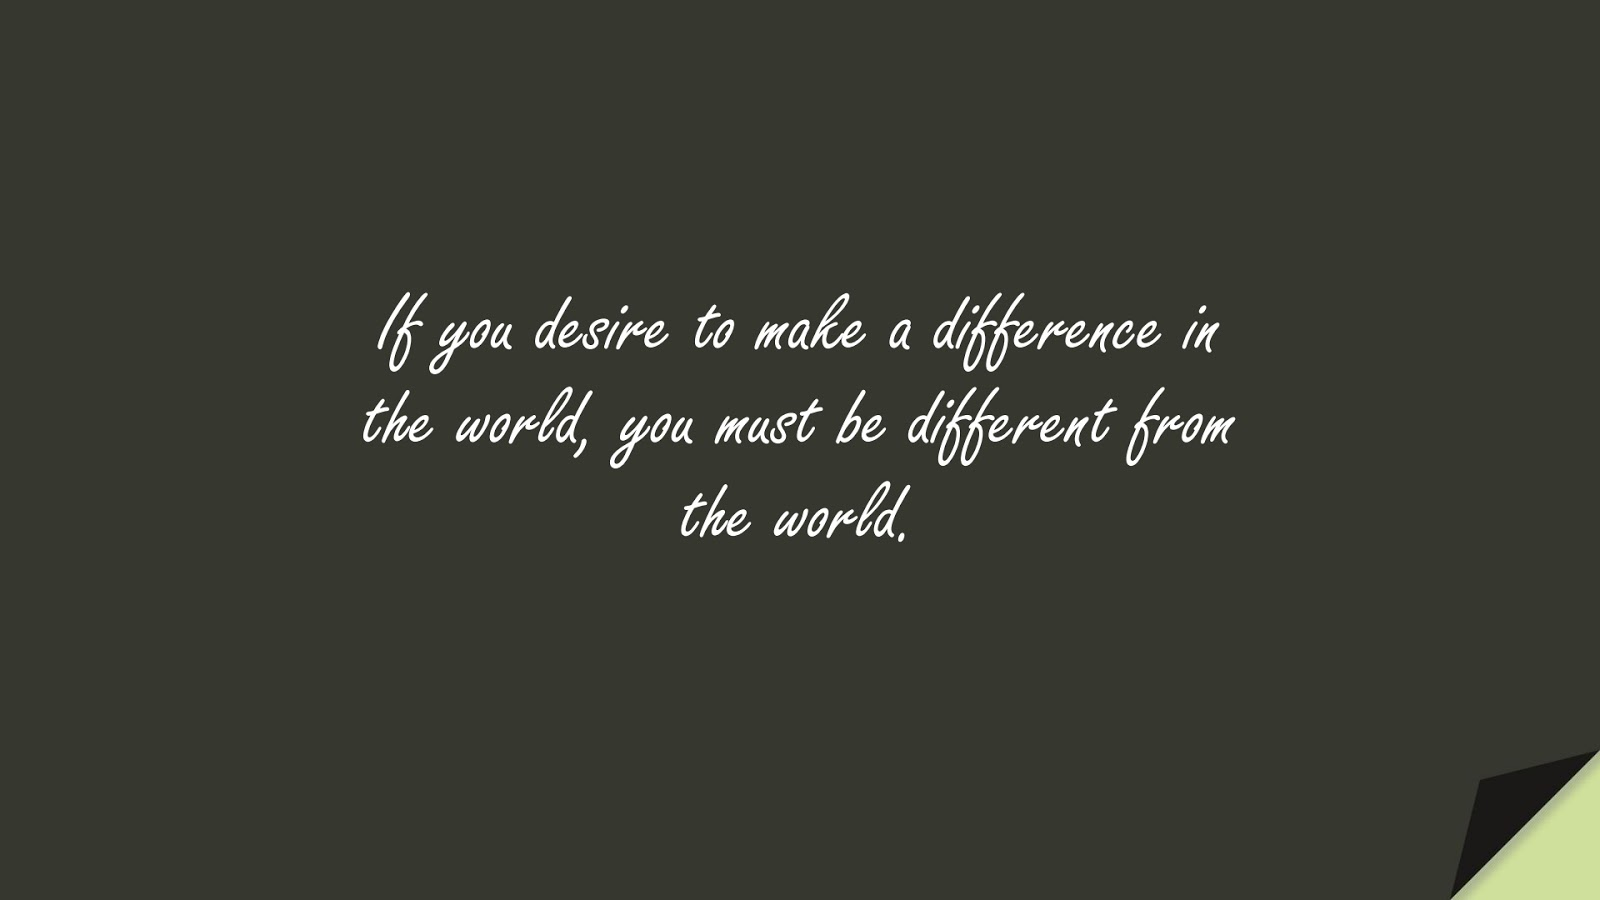 If you desire to make a difference in the world, you must be different from the world.FALSE